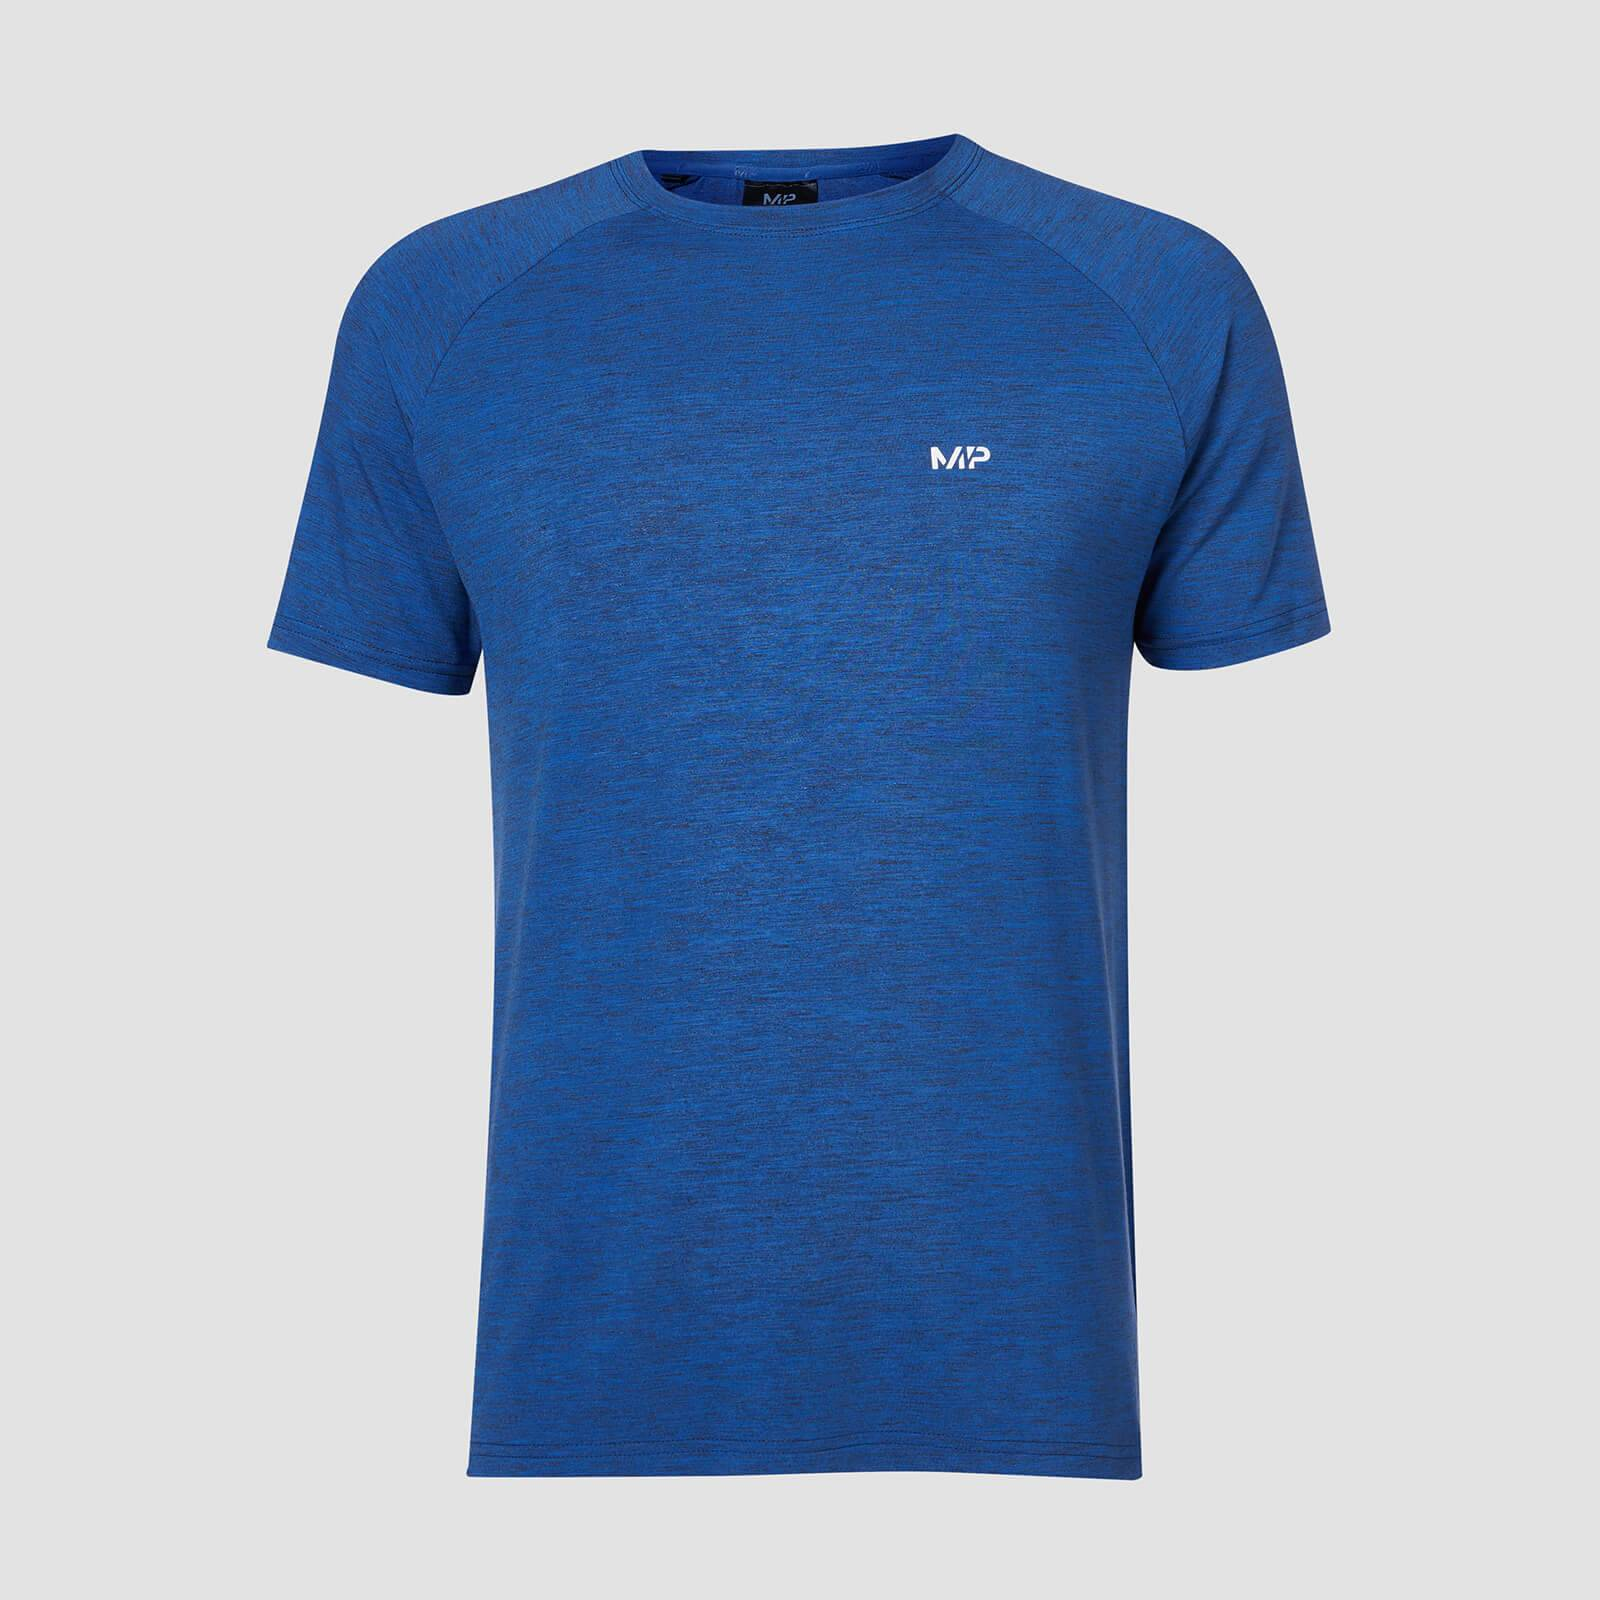 Myprotein T-shirt Performance Short Sleeve MP - Blu cobalto/Nero - L